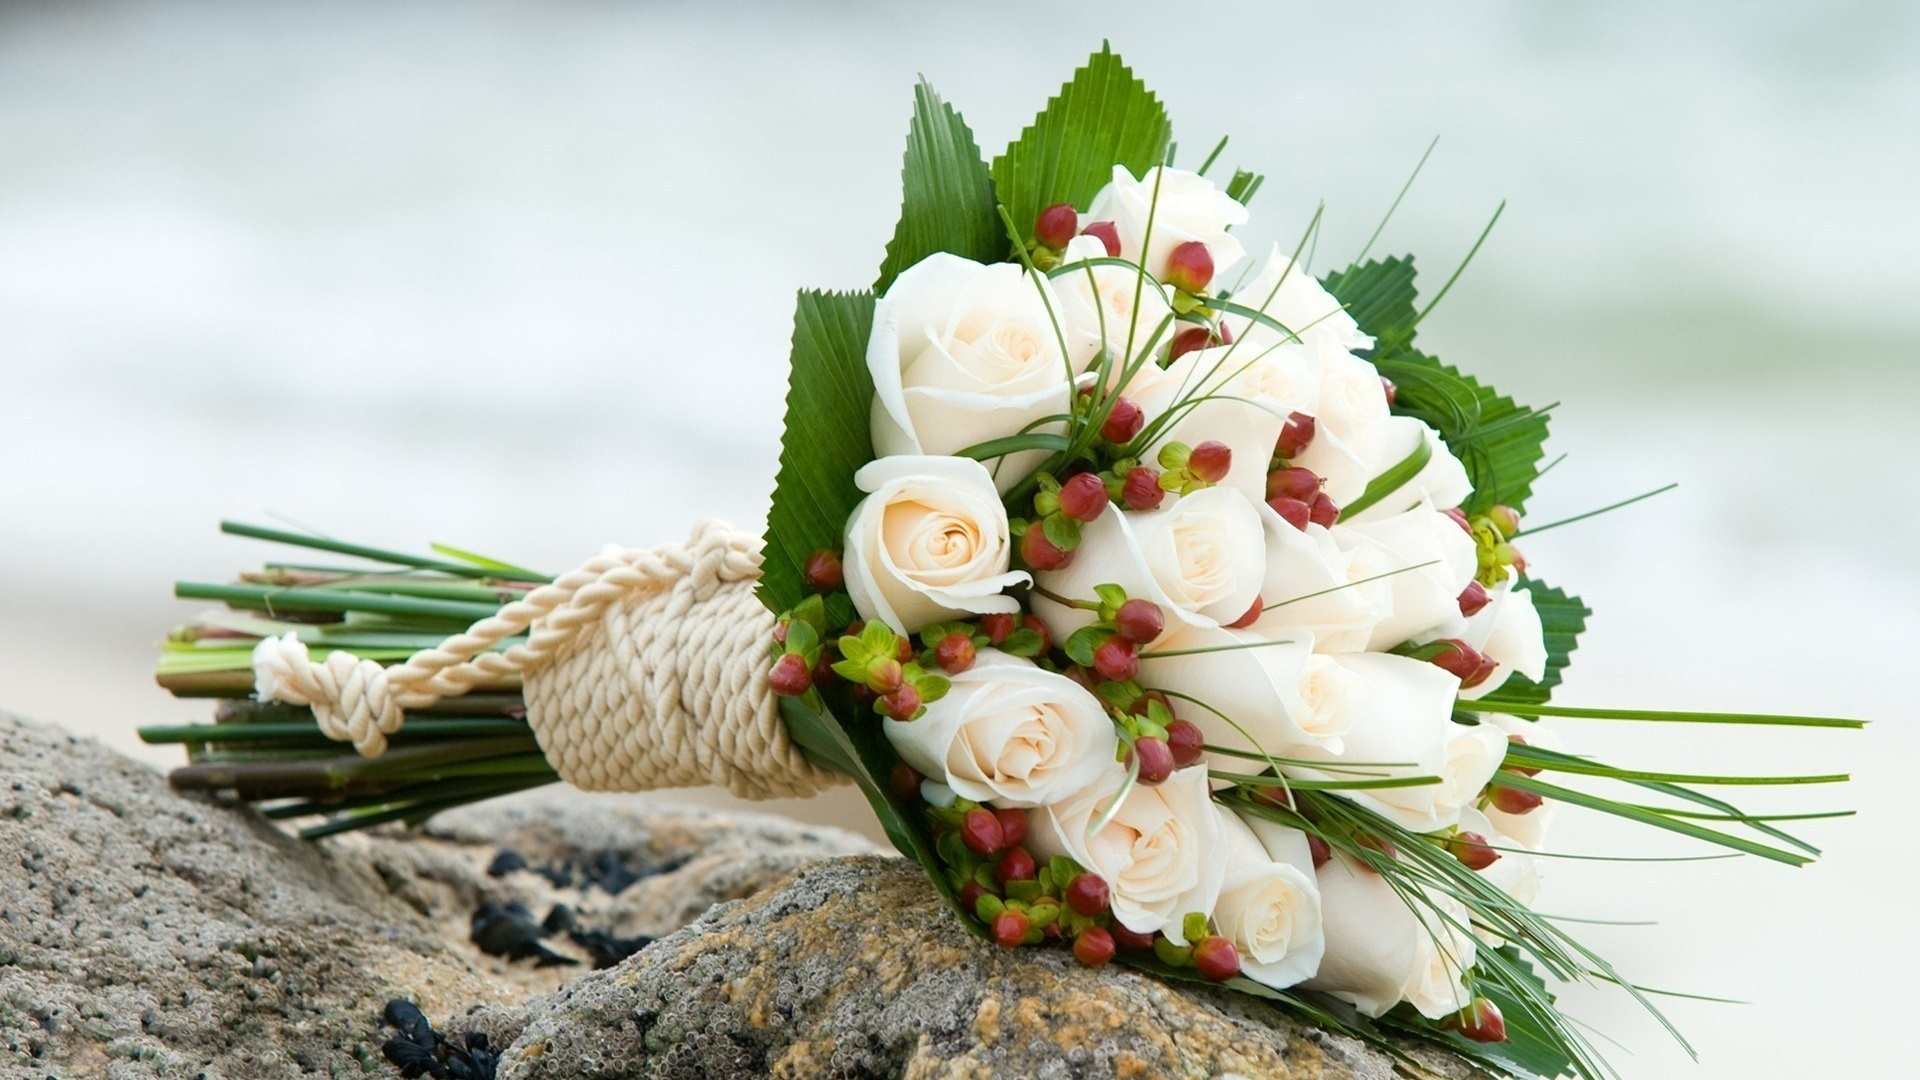 flower-bouquet-for-wedding-beautiful-bouquet-flower-rose-white-wedding-bouquet-other-wallpapers-at-wedding-flowers